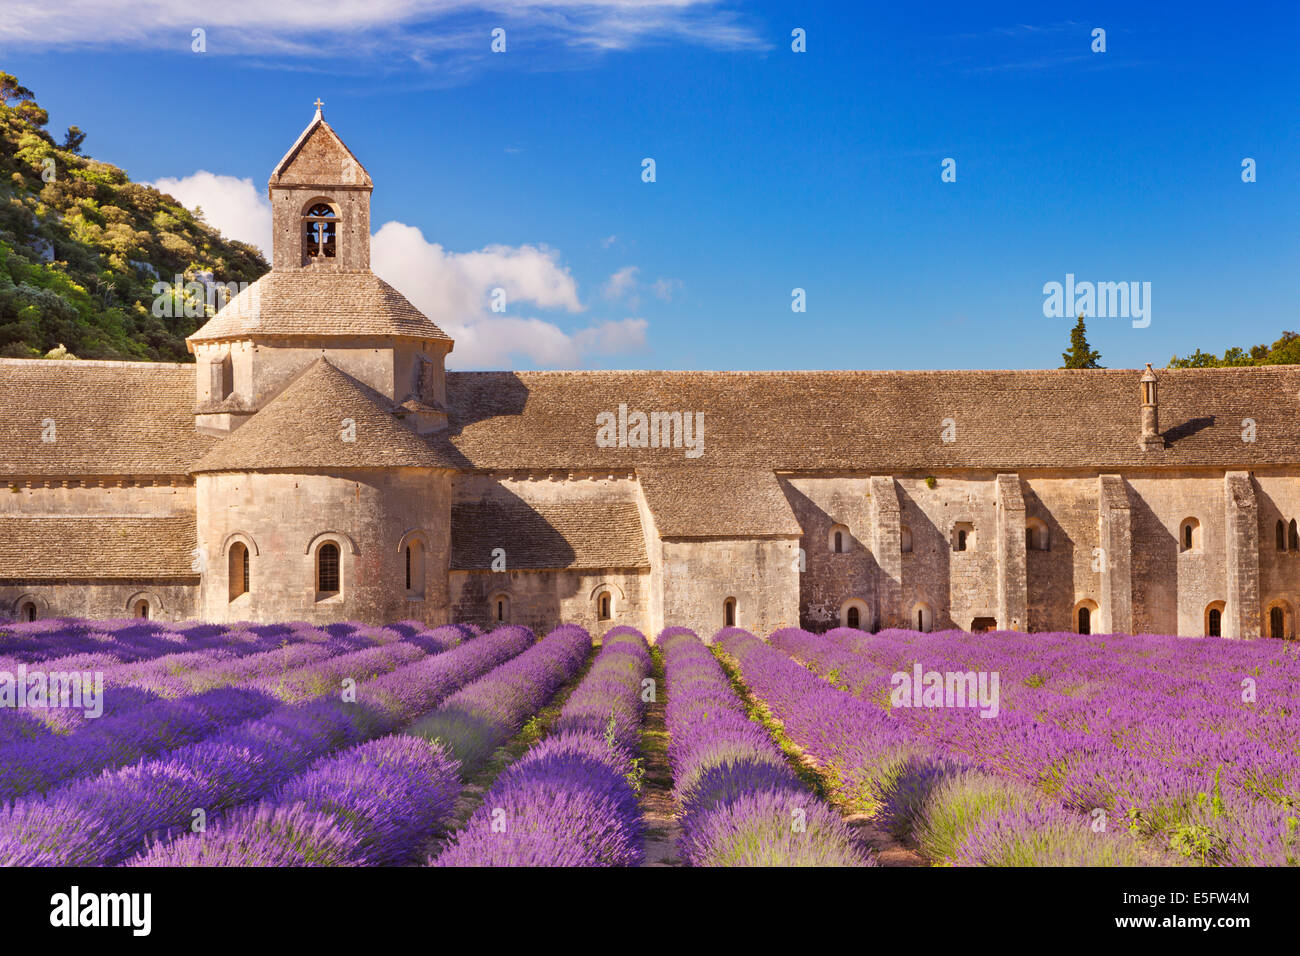 The Abbaye de Senanque in the Provence, France with blooming lavender - Stock Image